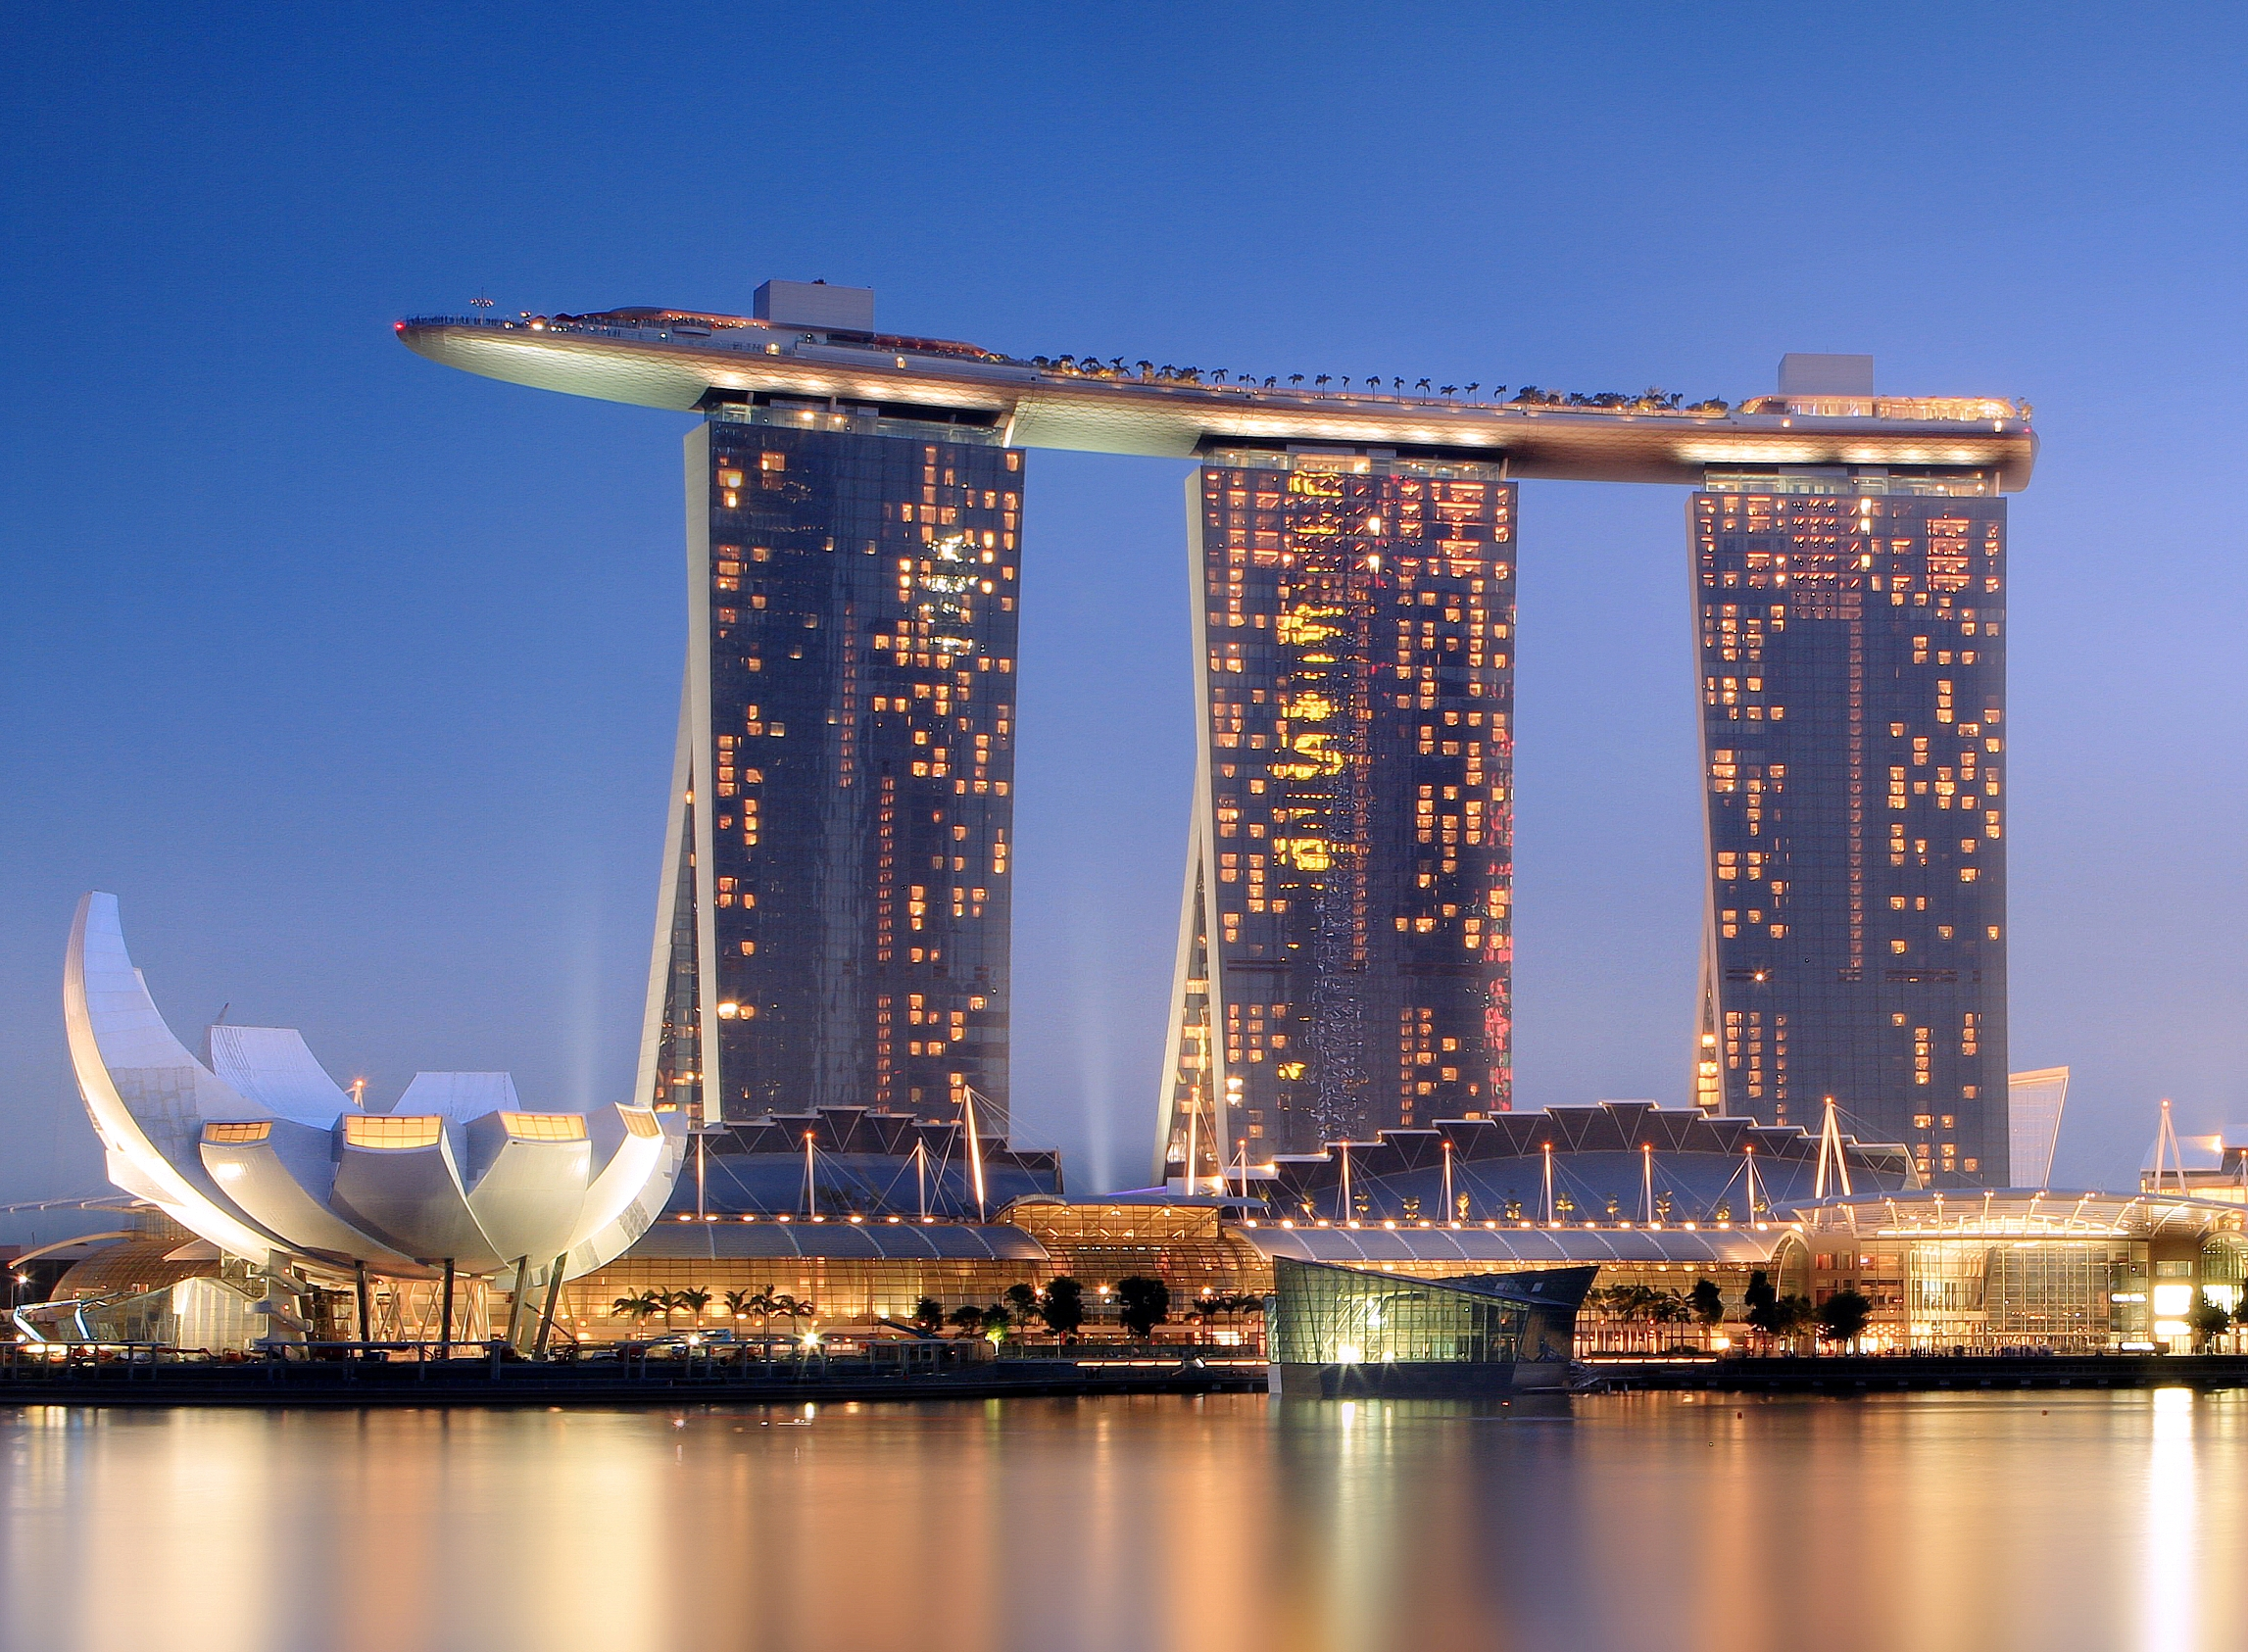 Photo Credit - Marina Bay Sands